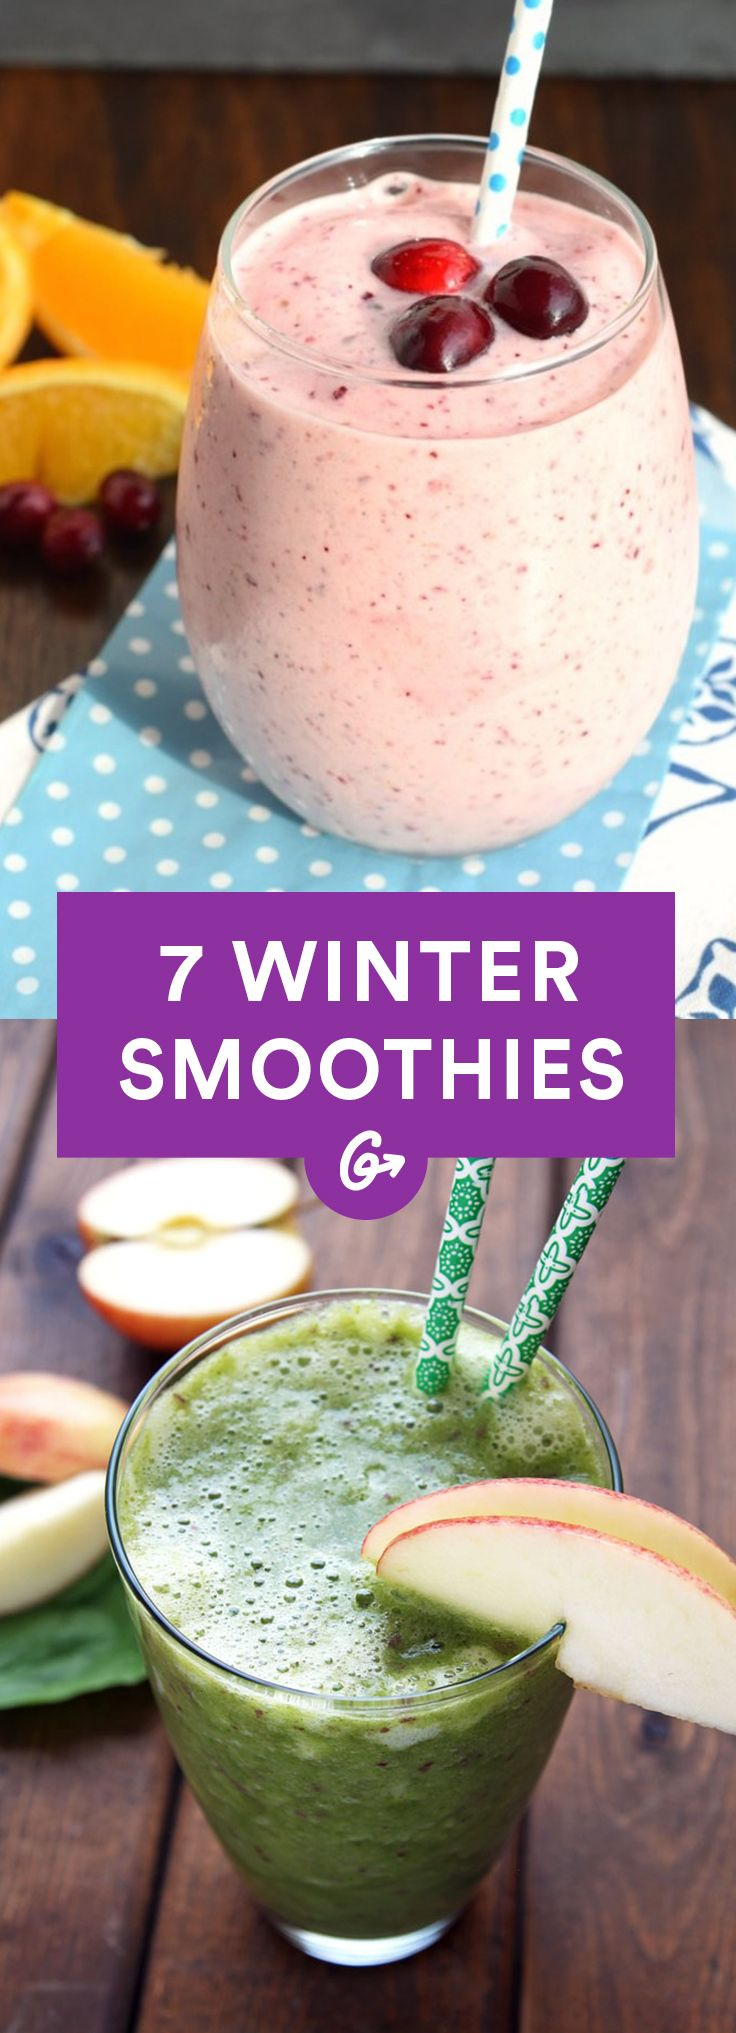 They all taste indulgent and have enough nutrients to balance out any cold-weather comfort foods. #winter #smoothie #recipes http://greatist.com/eat/winter-smoothie-recipes